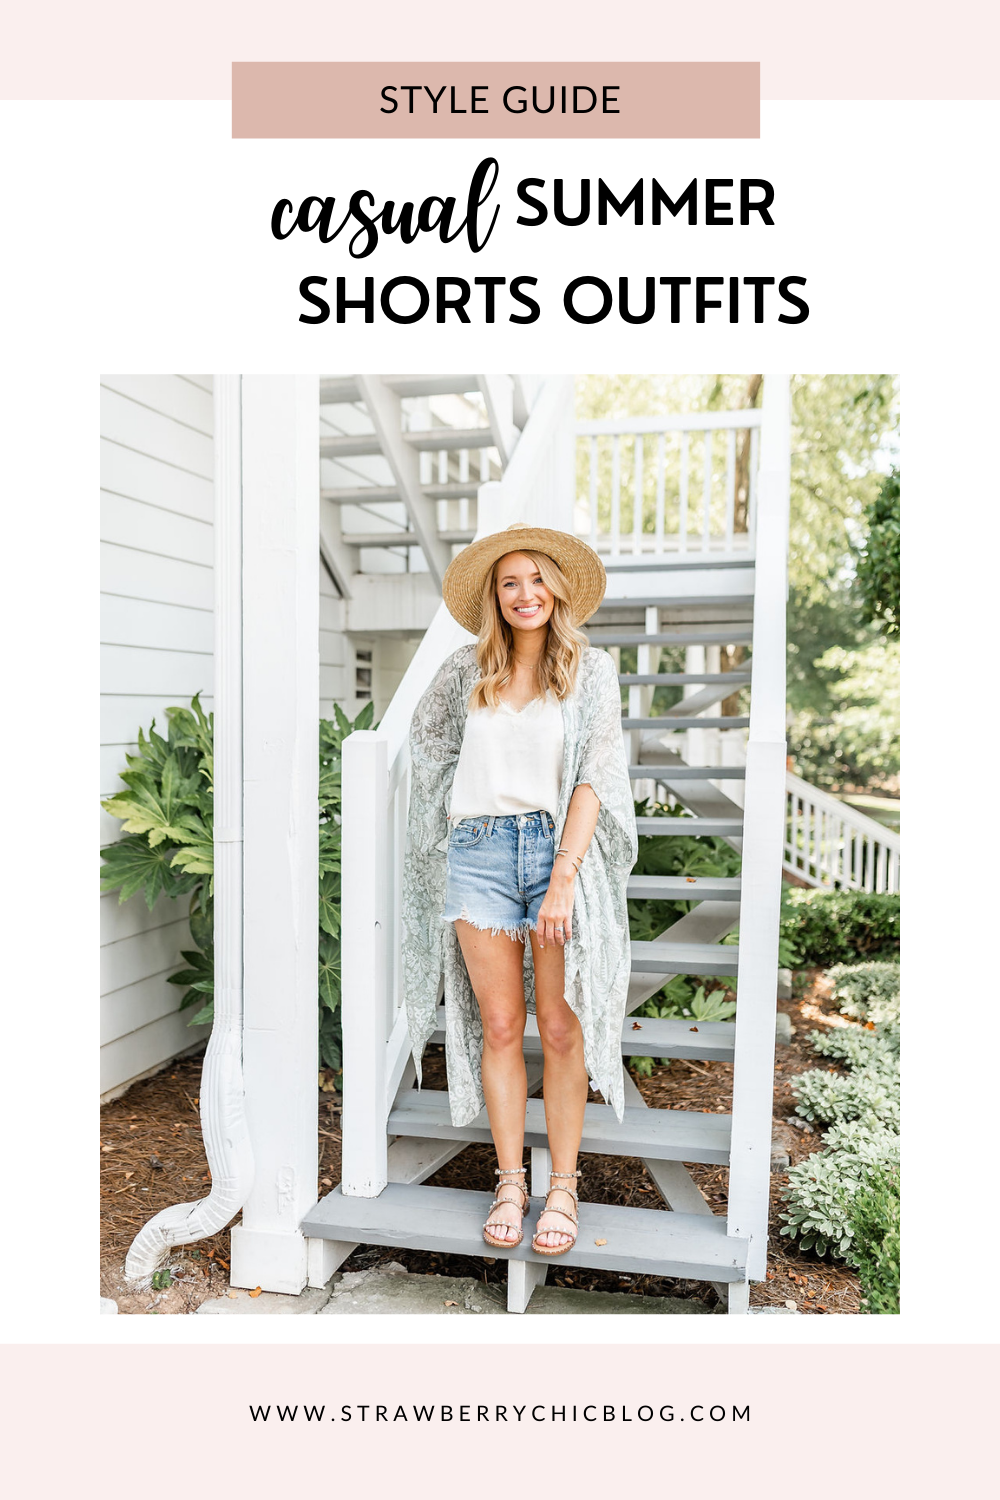 Style guide for casual summer shorts